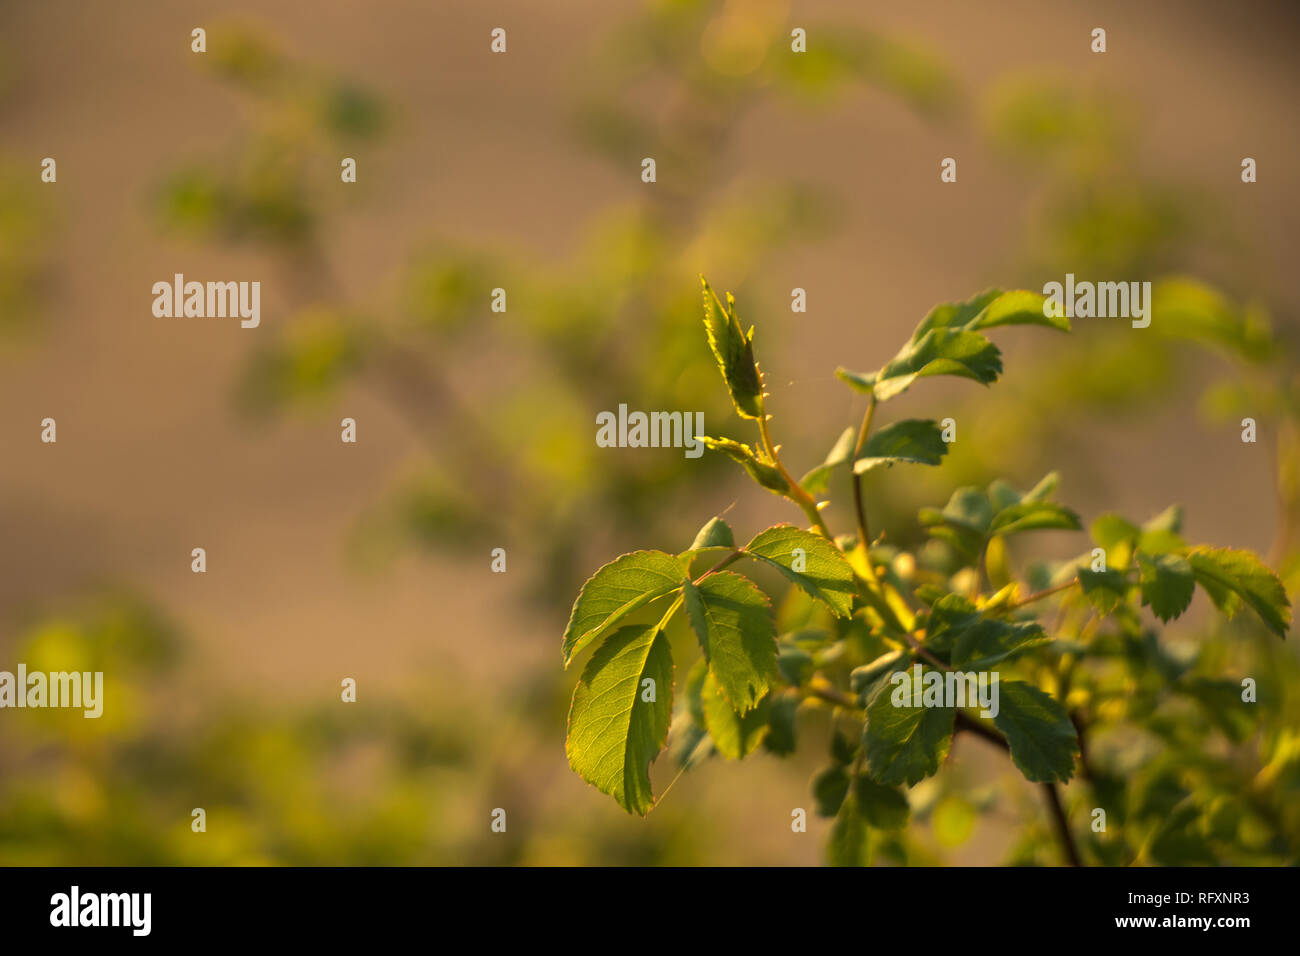 Green image of nettles close - Stock Image